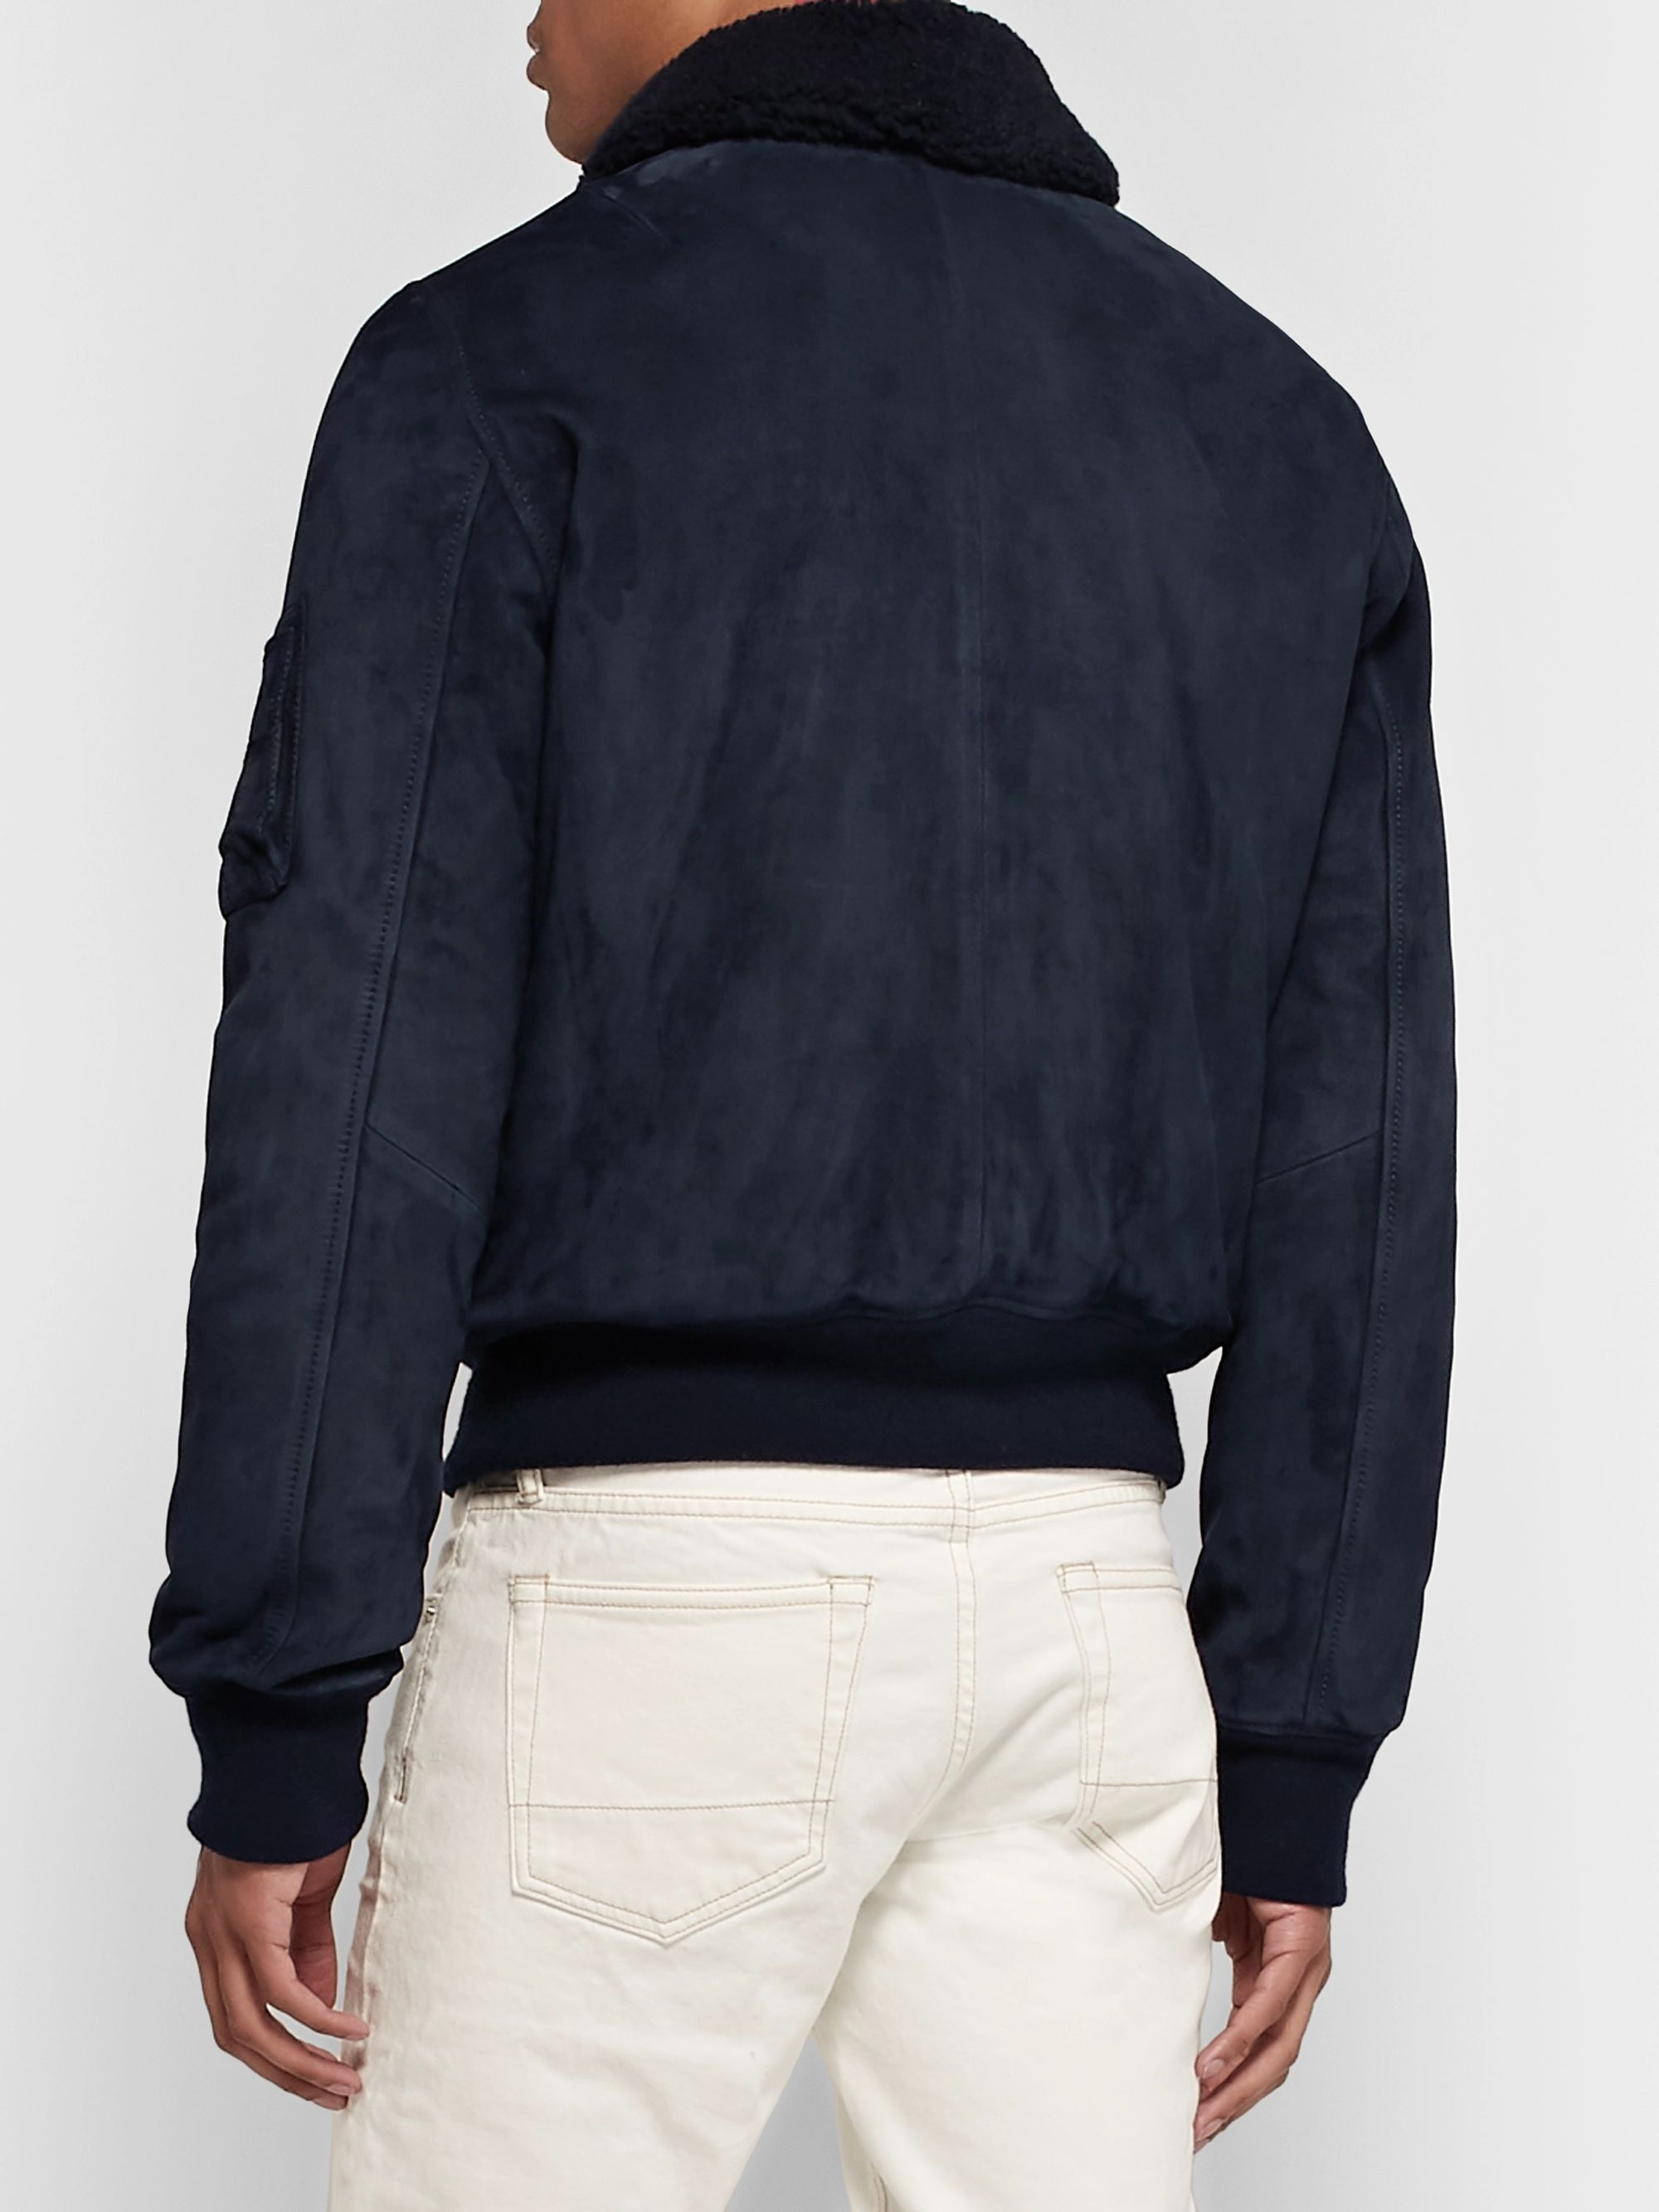 Yves Salomon Shearling-Lined Suede Down Bomber Jacket